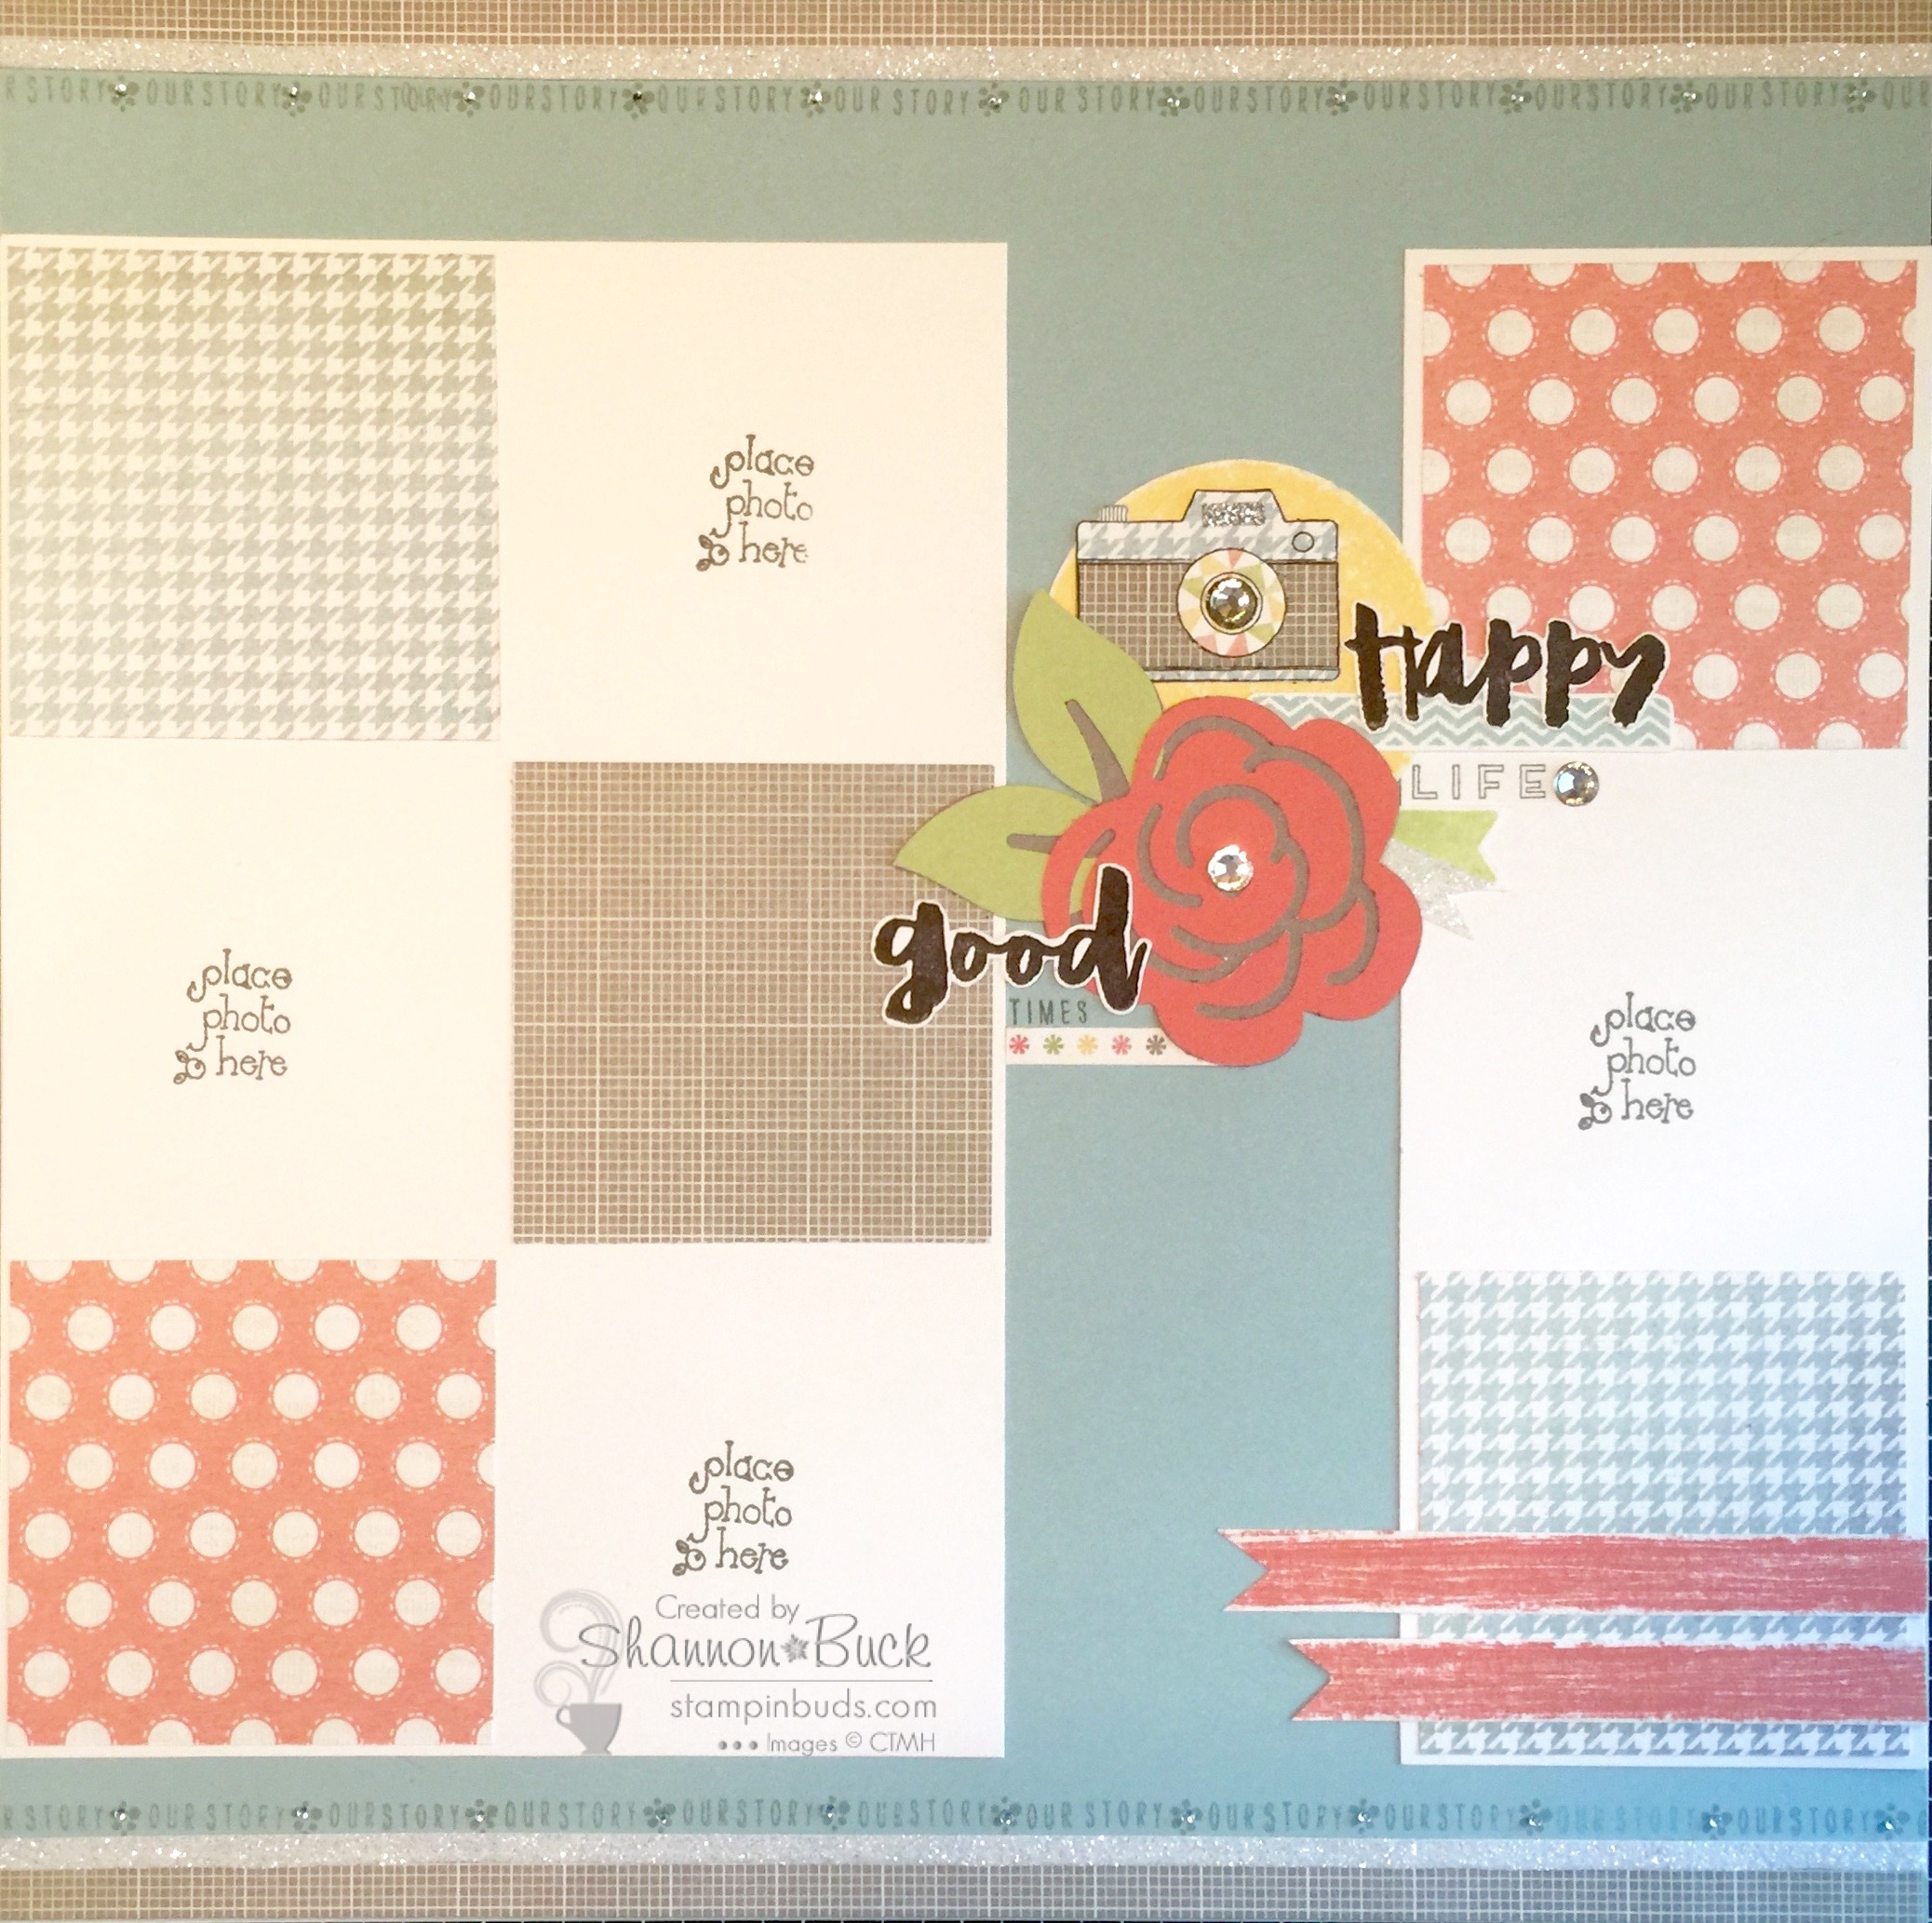 #HelloLife Scrapbook Page